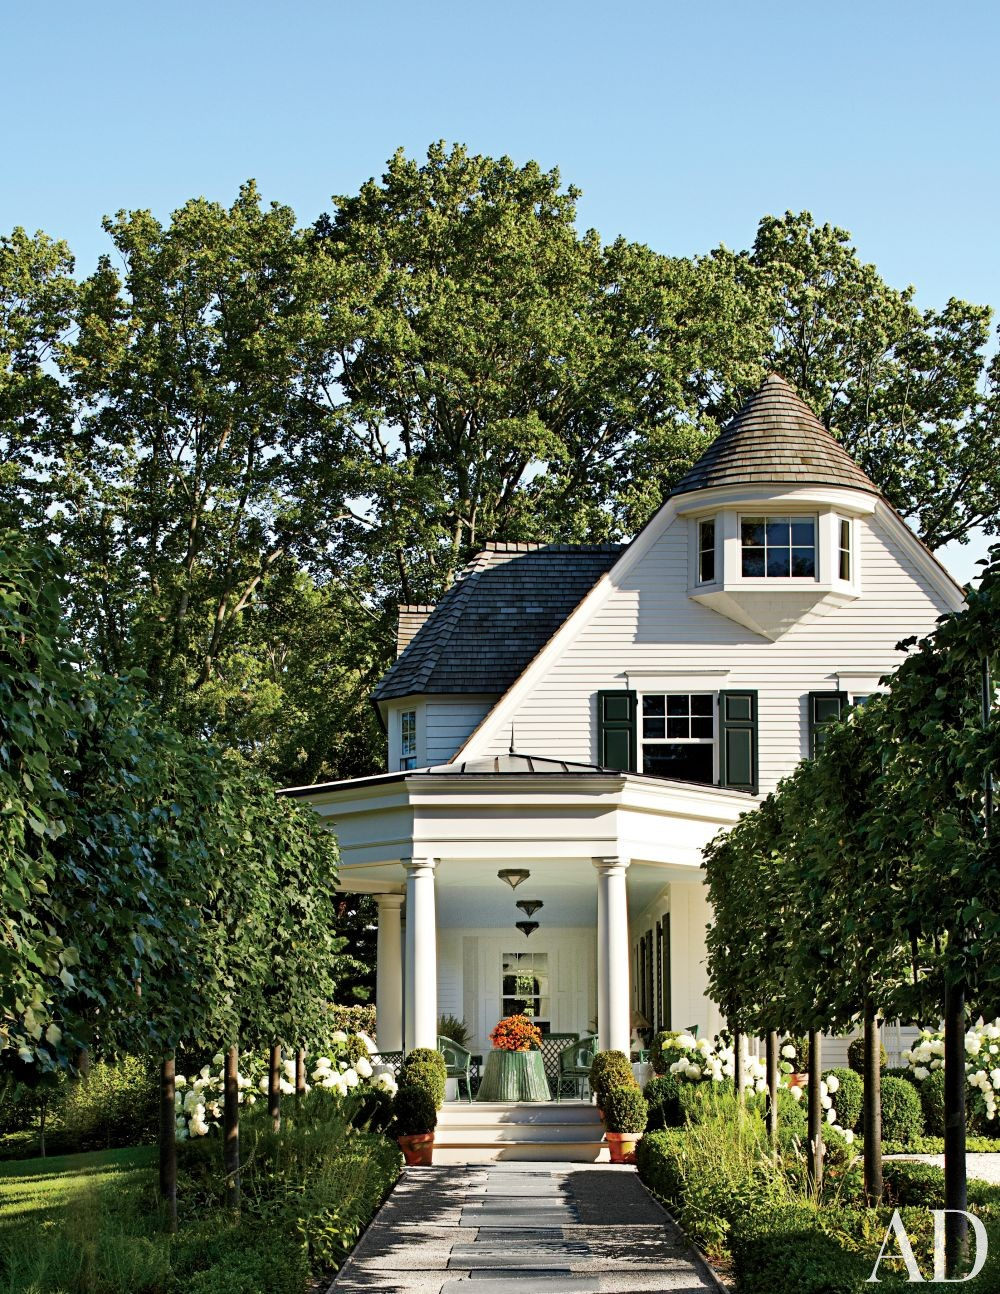 Traditional Exterior by Miles Redd and Knight Architecture in Greenwich, Connecticut